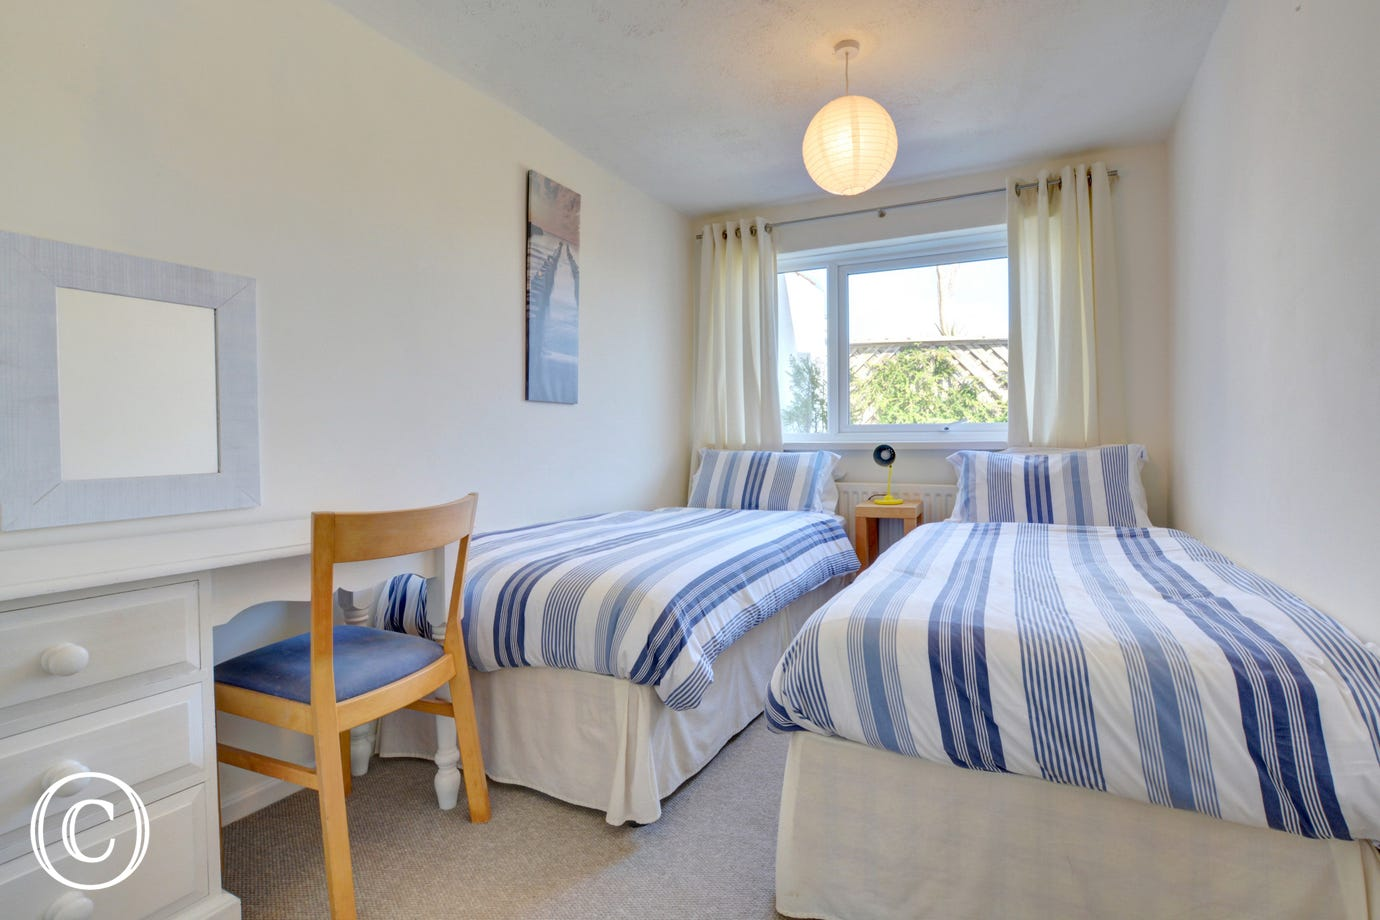 A twin bedroom at this Saundersfoot holiday home